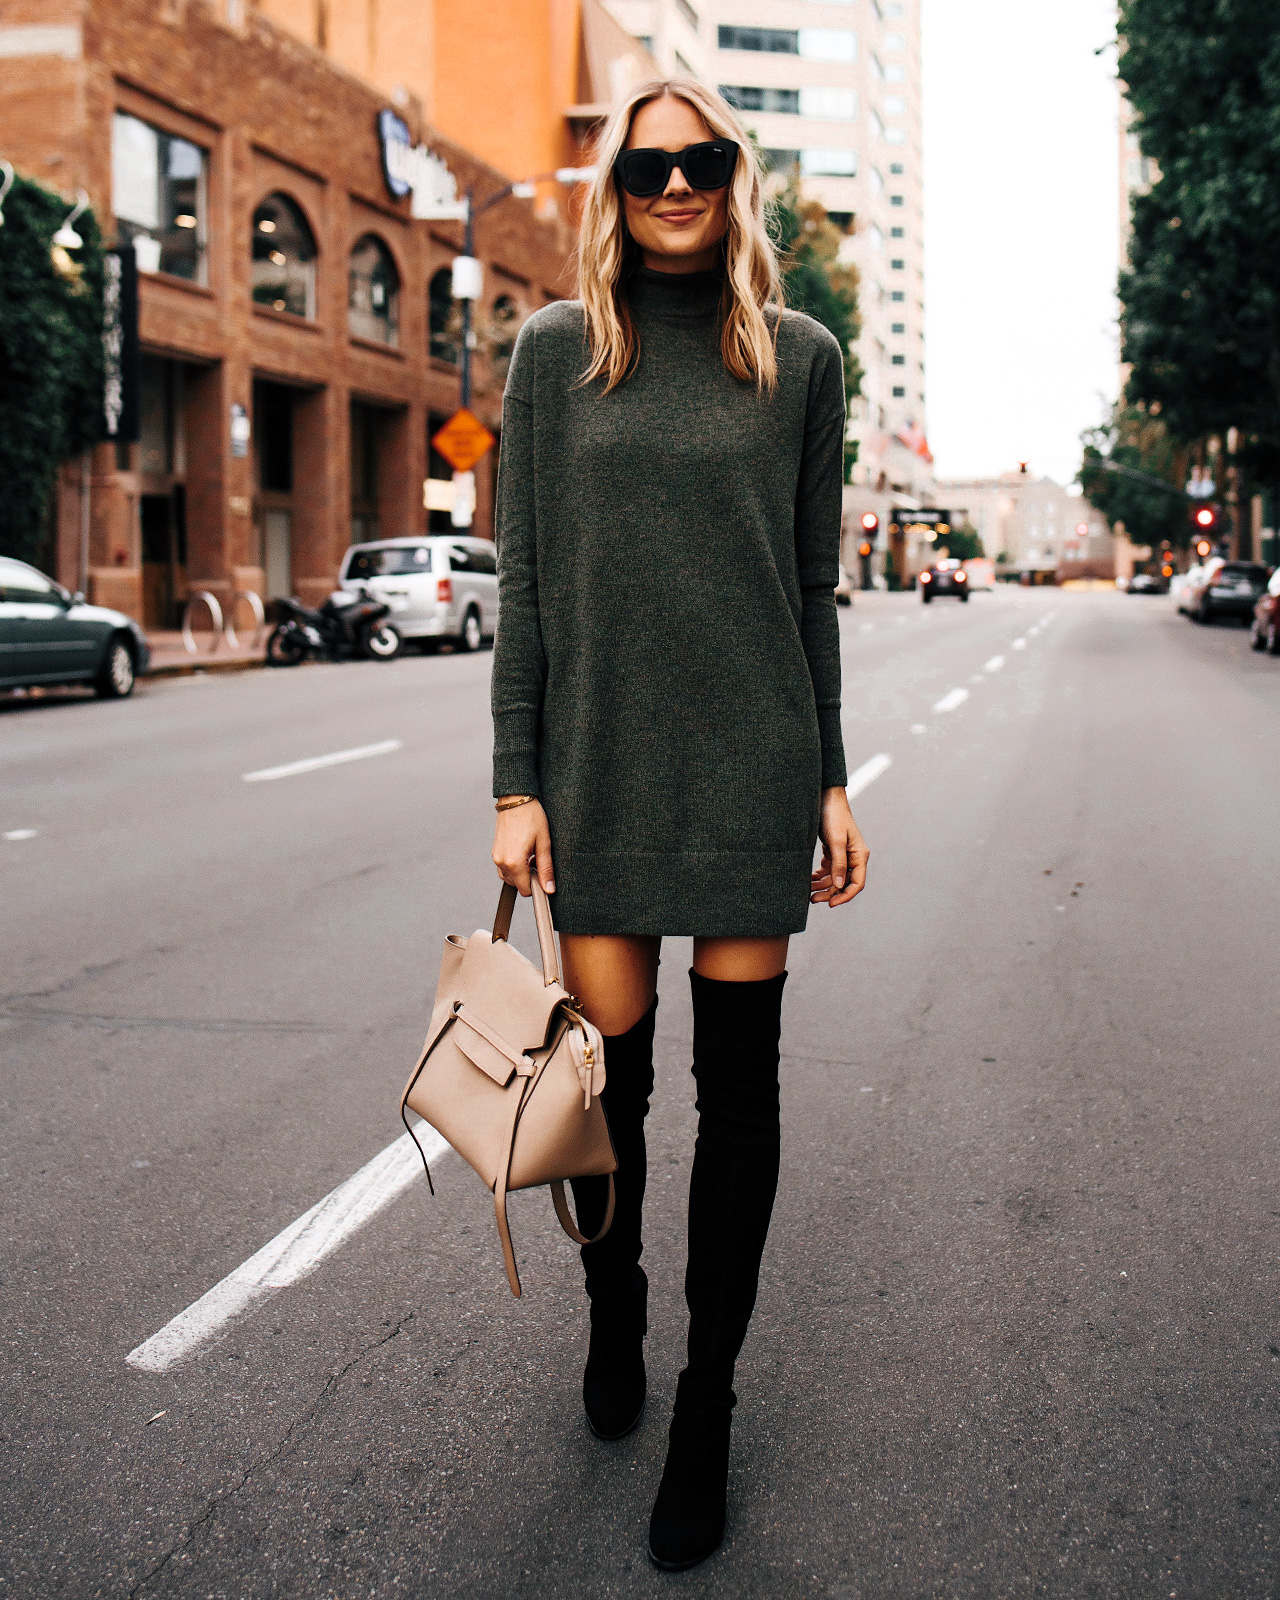 Fashion Jackson Wearing Everlane Green Sweater Dress Black Over the Knee Boots